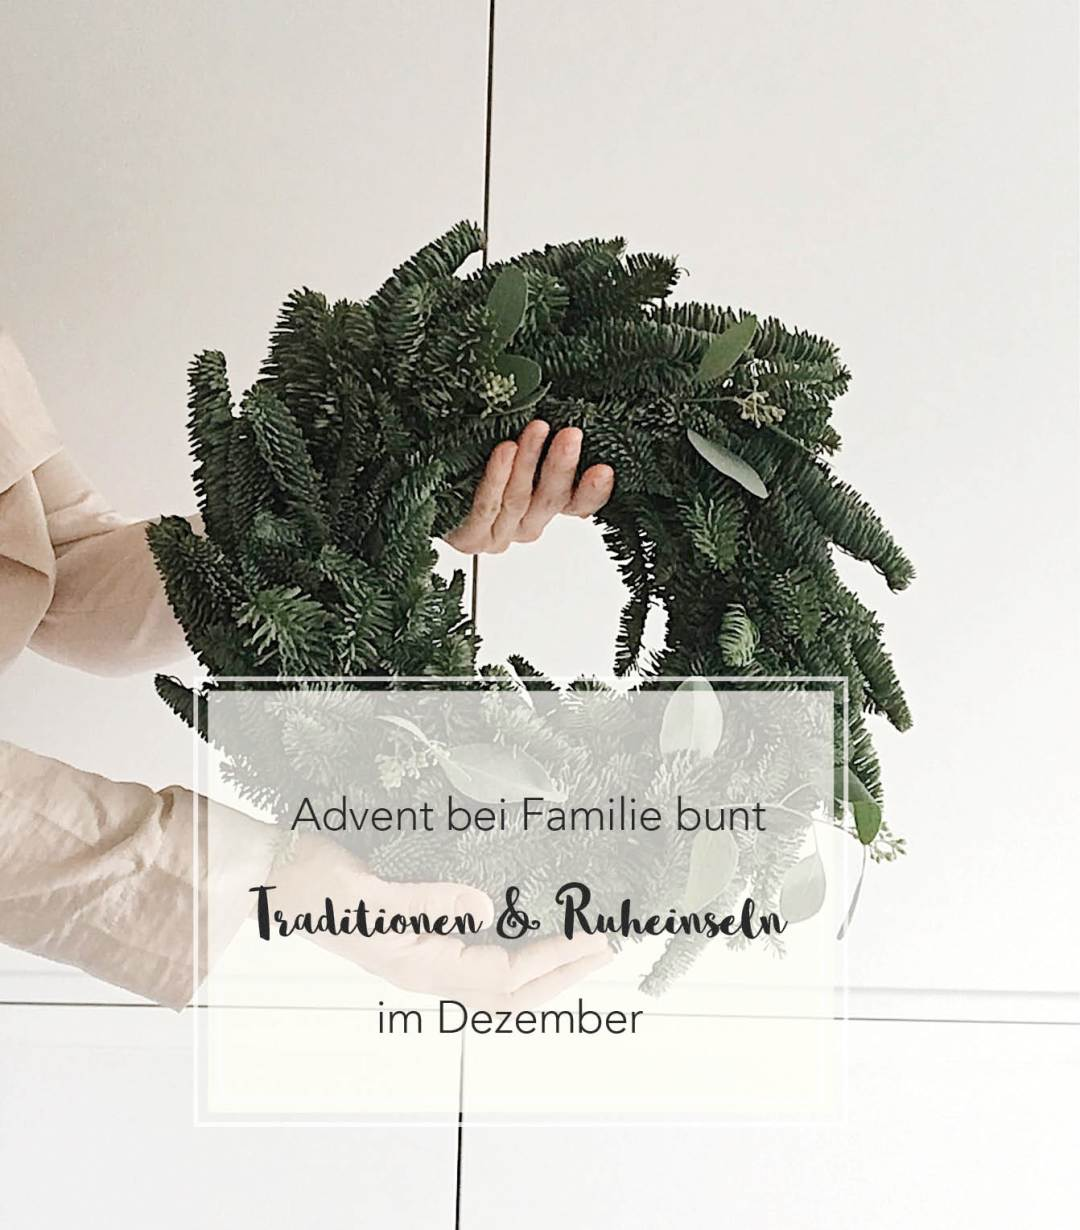 Advent bei Familie bunt Titelbild